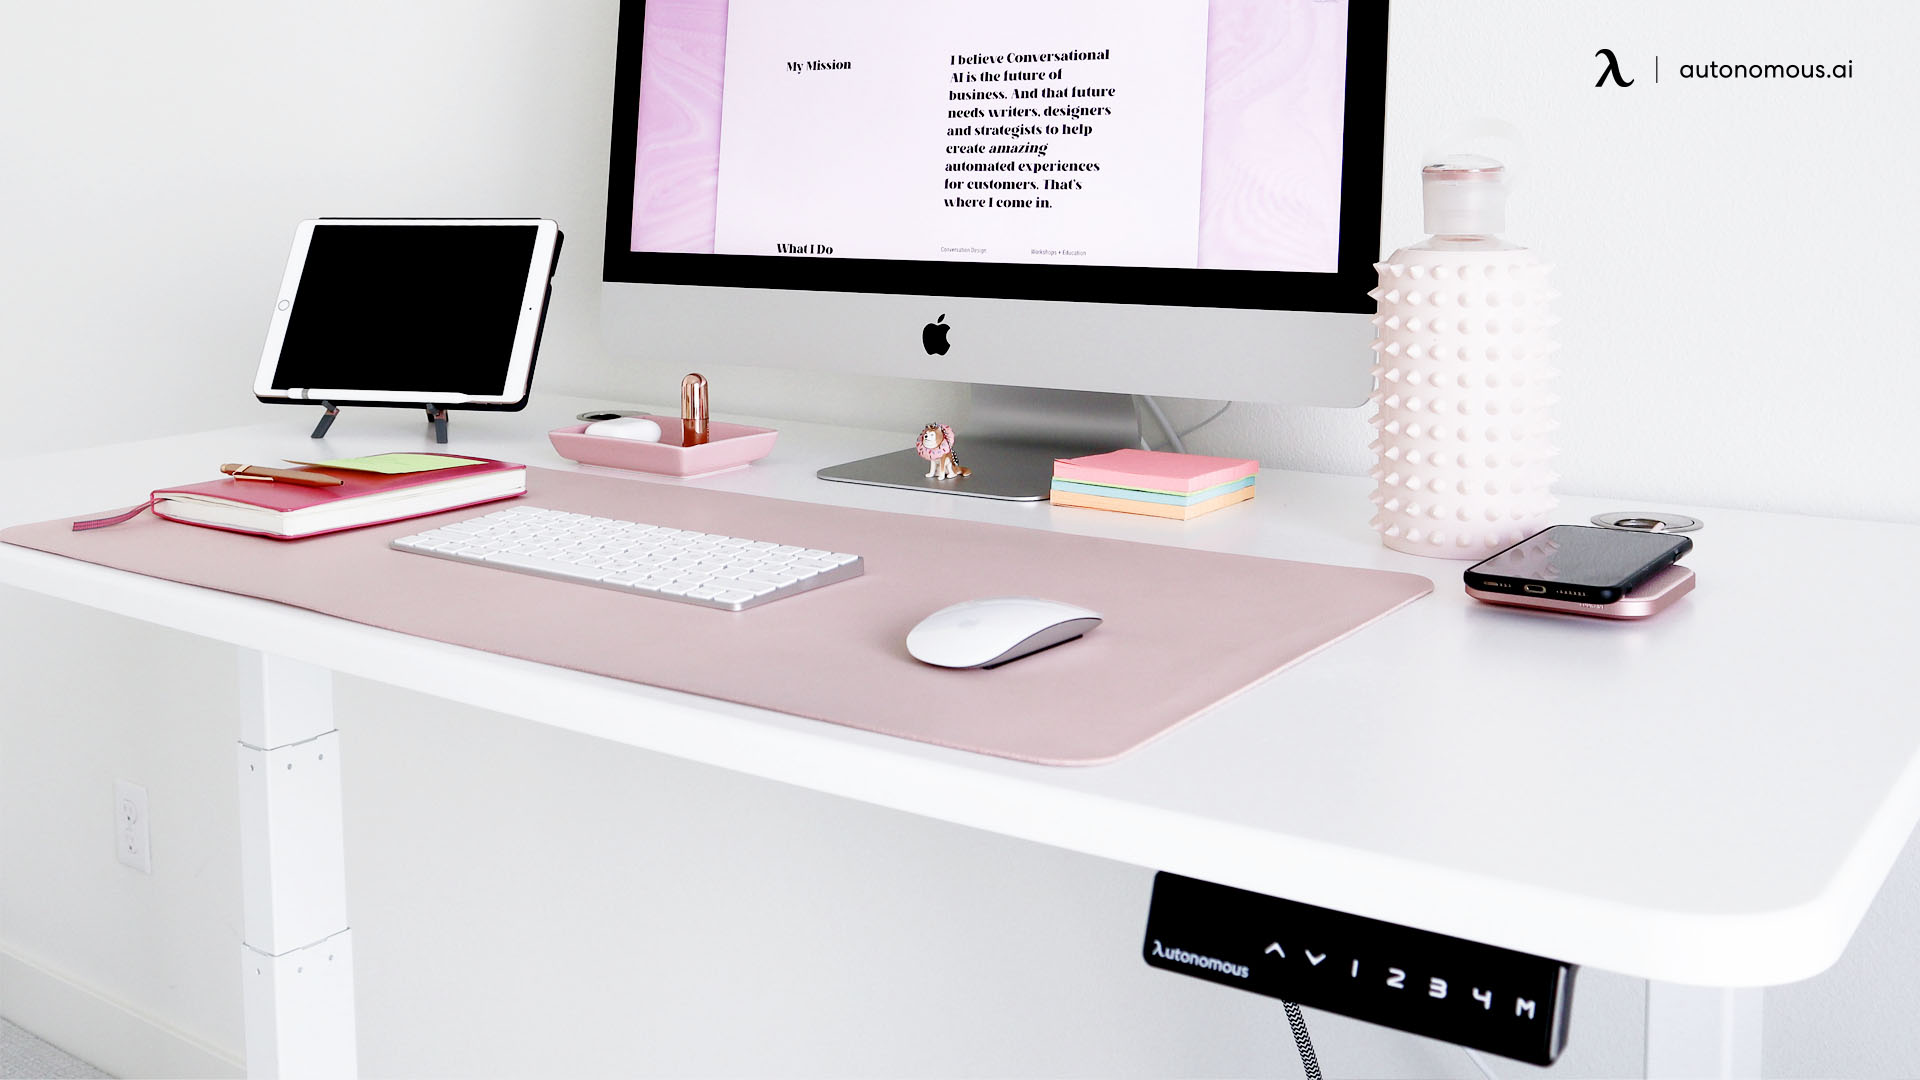 5 Cool Home Office Design Ideas for an Inspirational Workplace